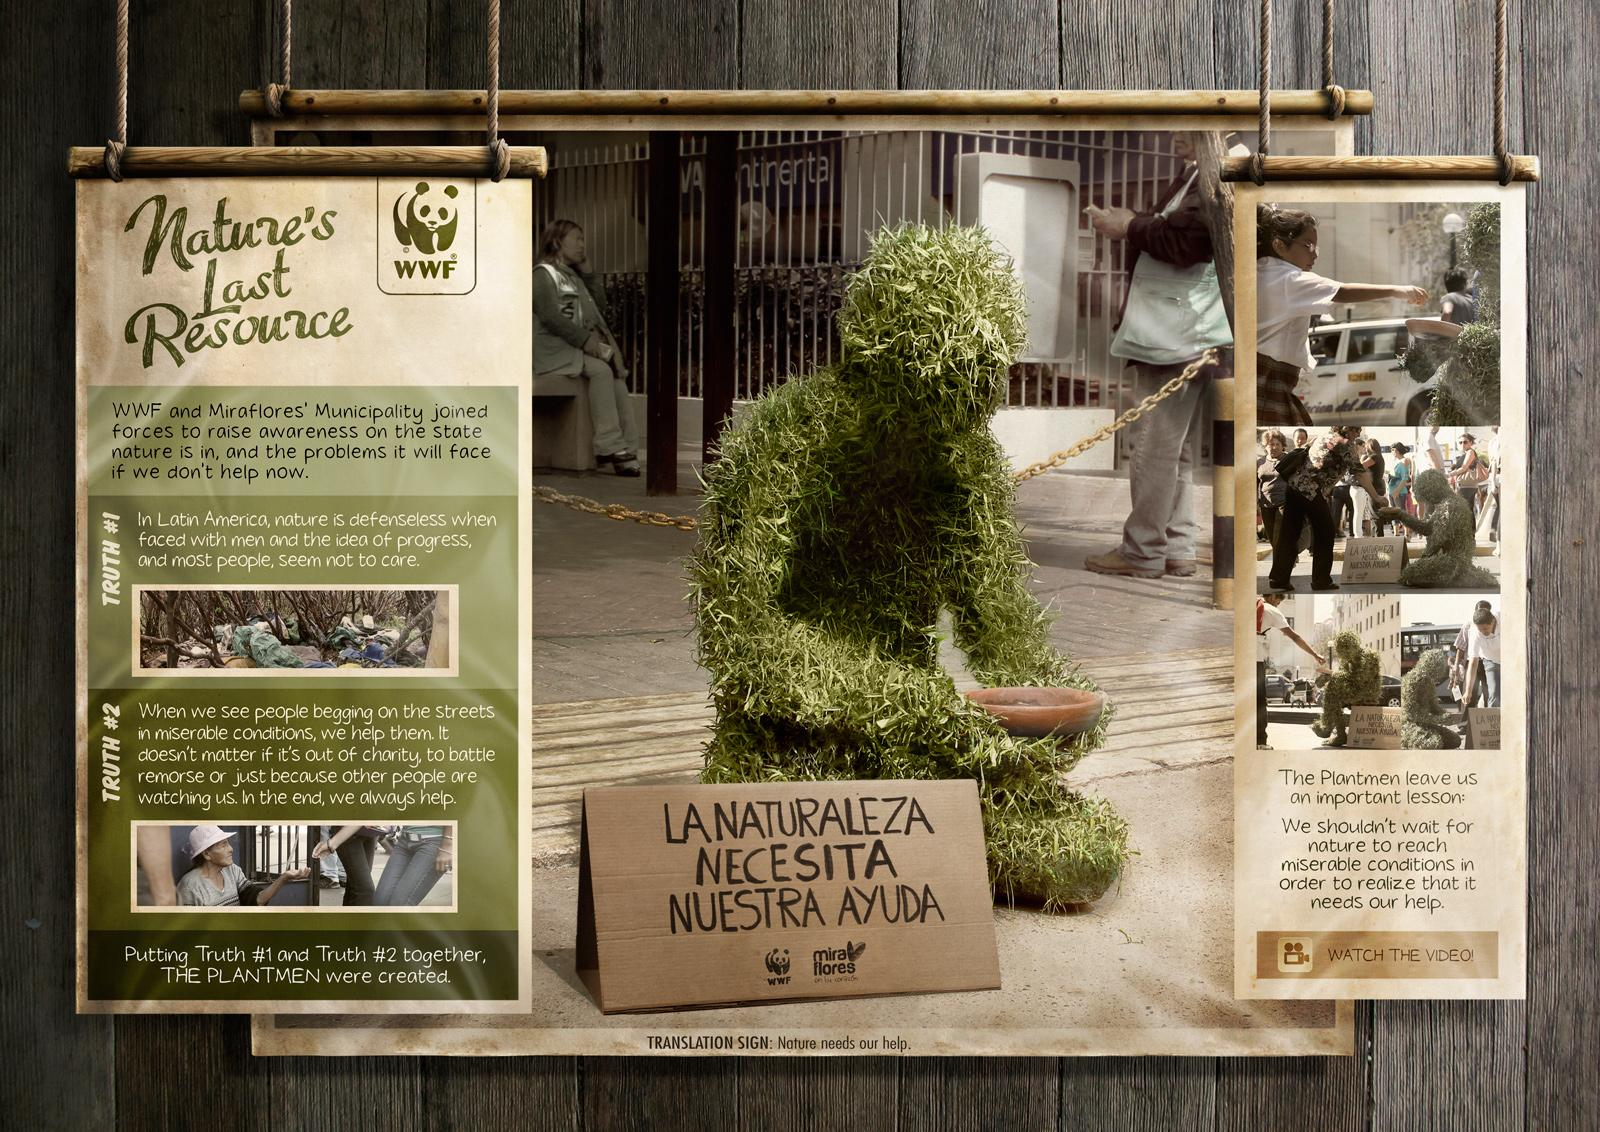 WWF Ambient Ad -  The Plantmen